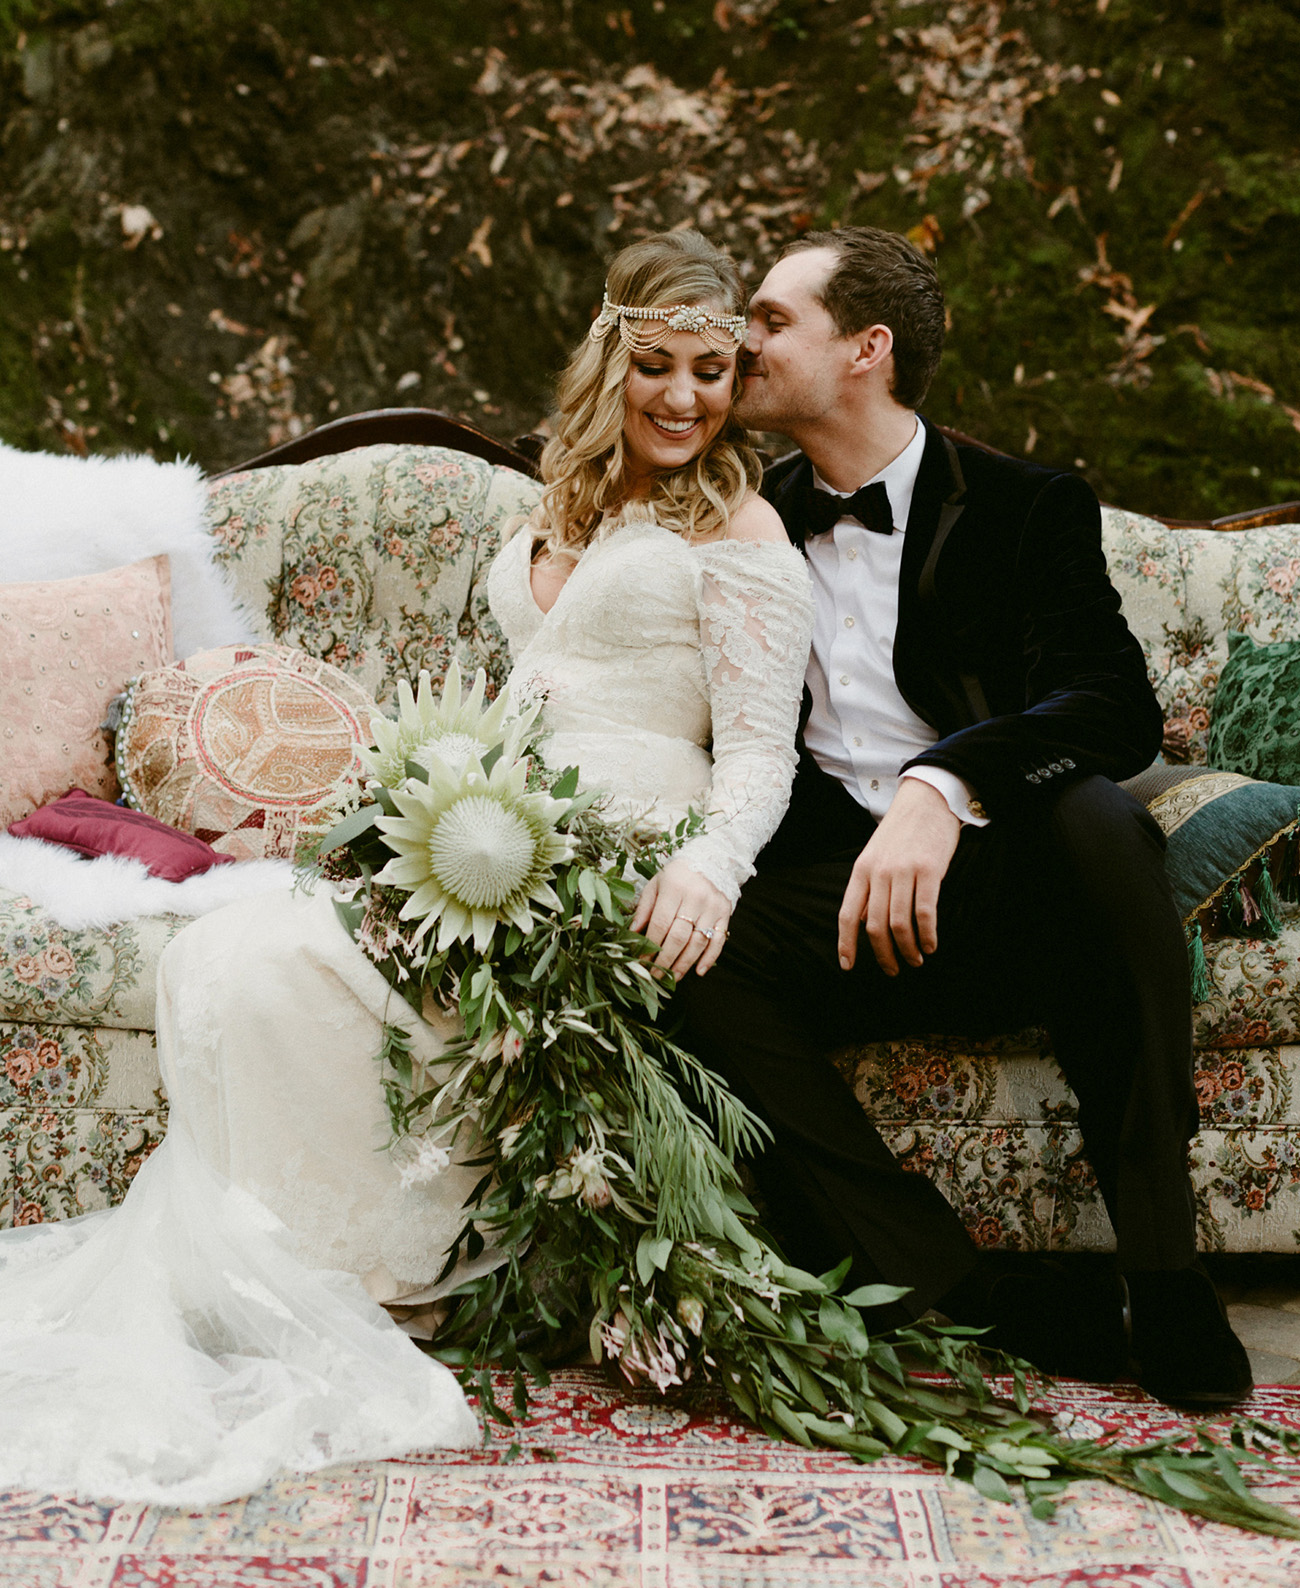 fairytale wedding with giant green protea bouquet